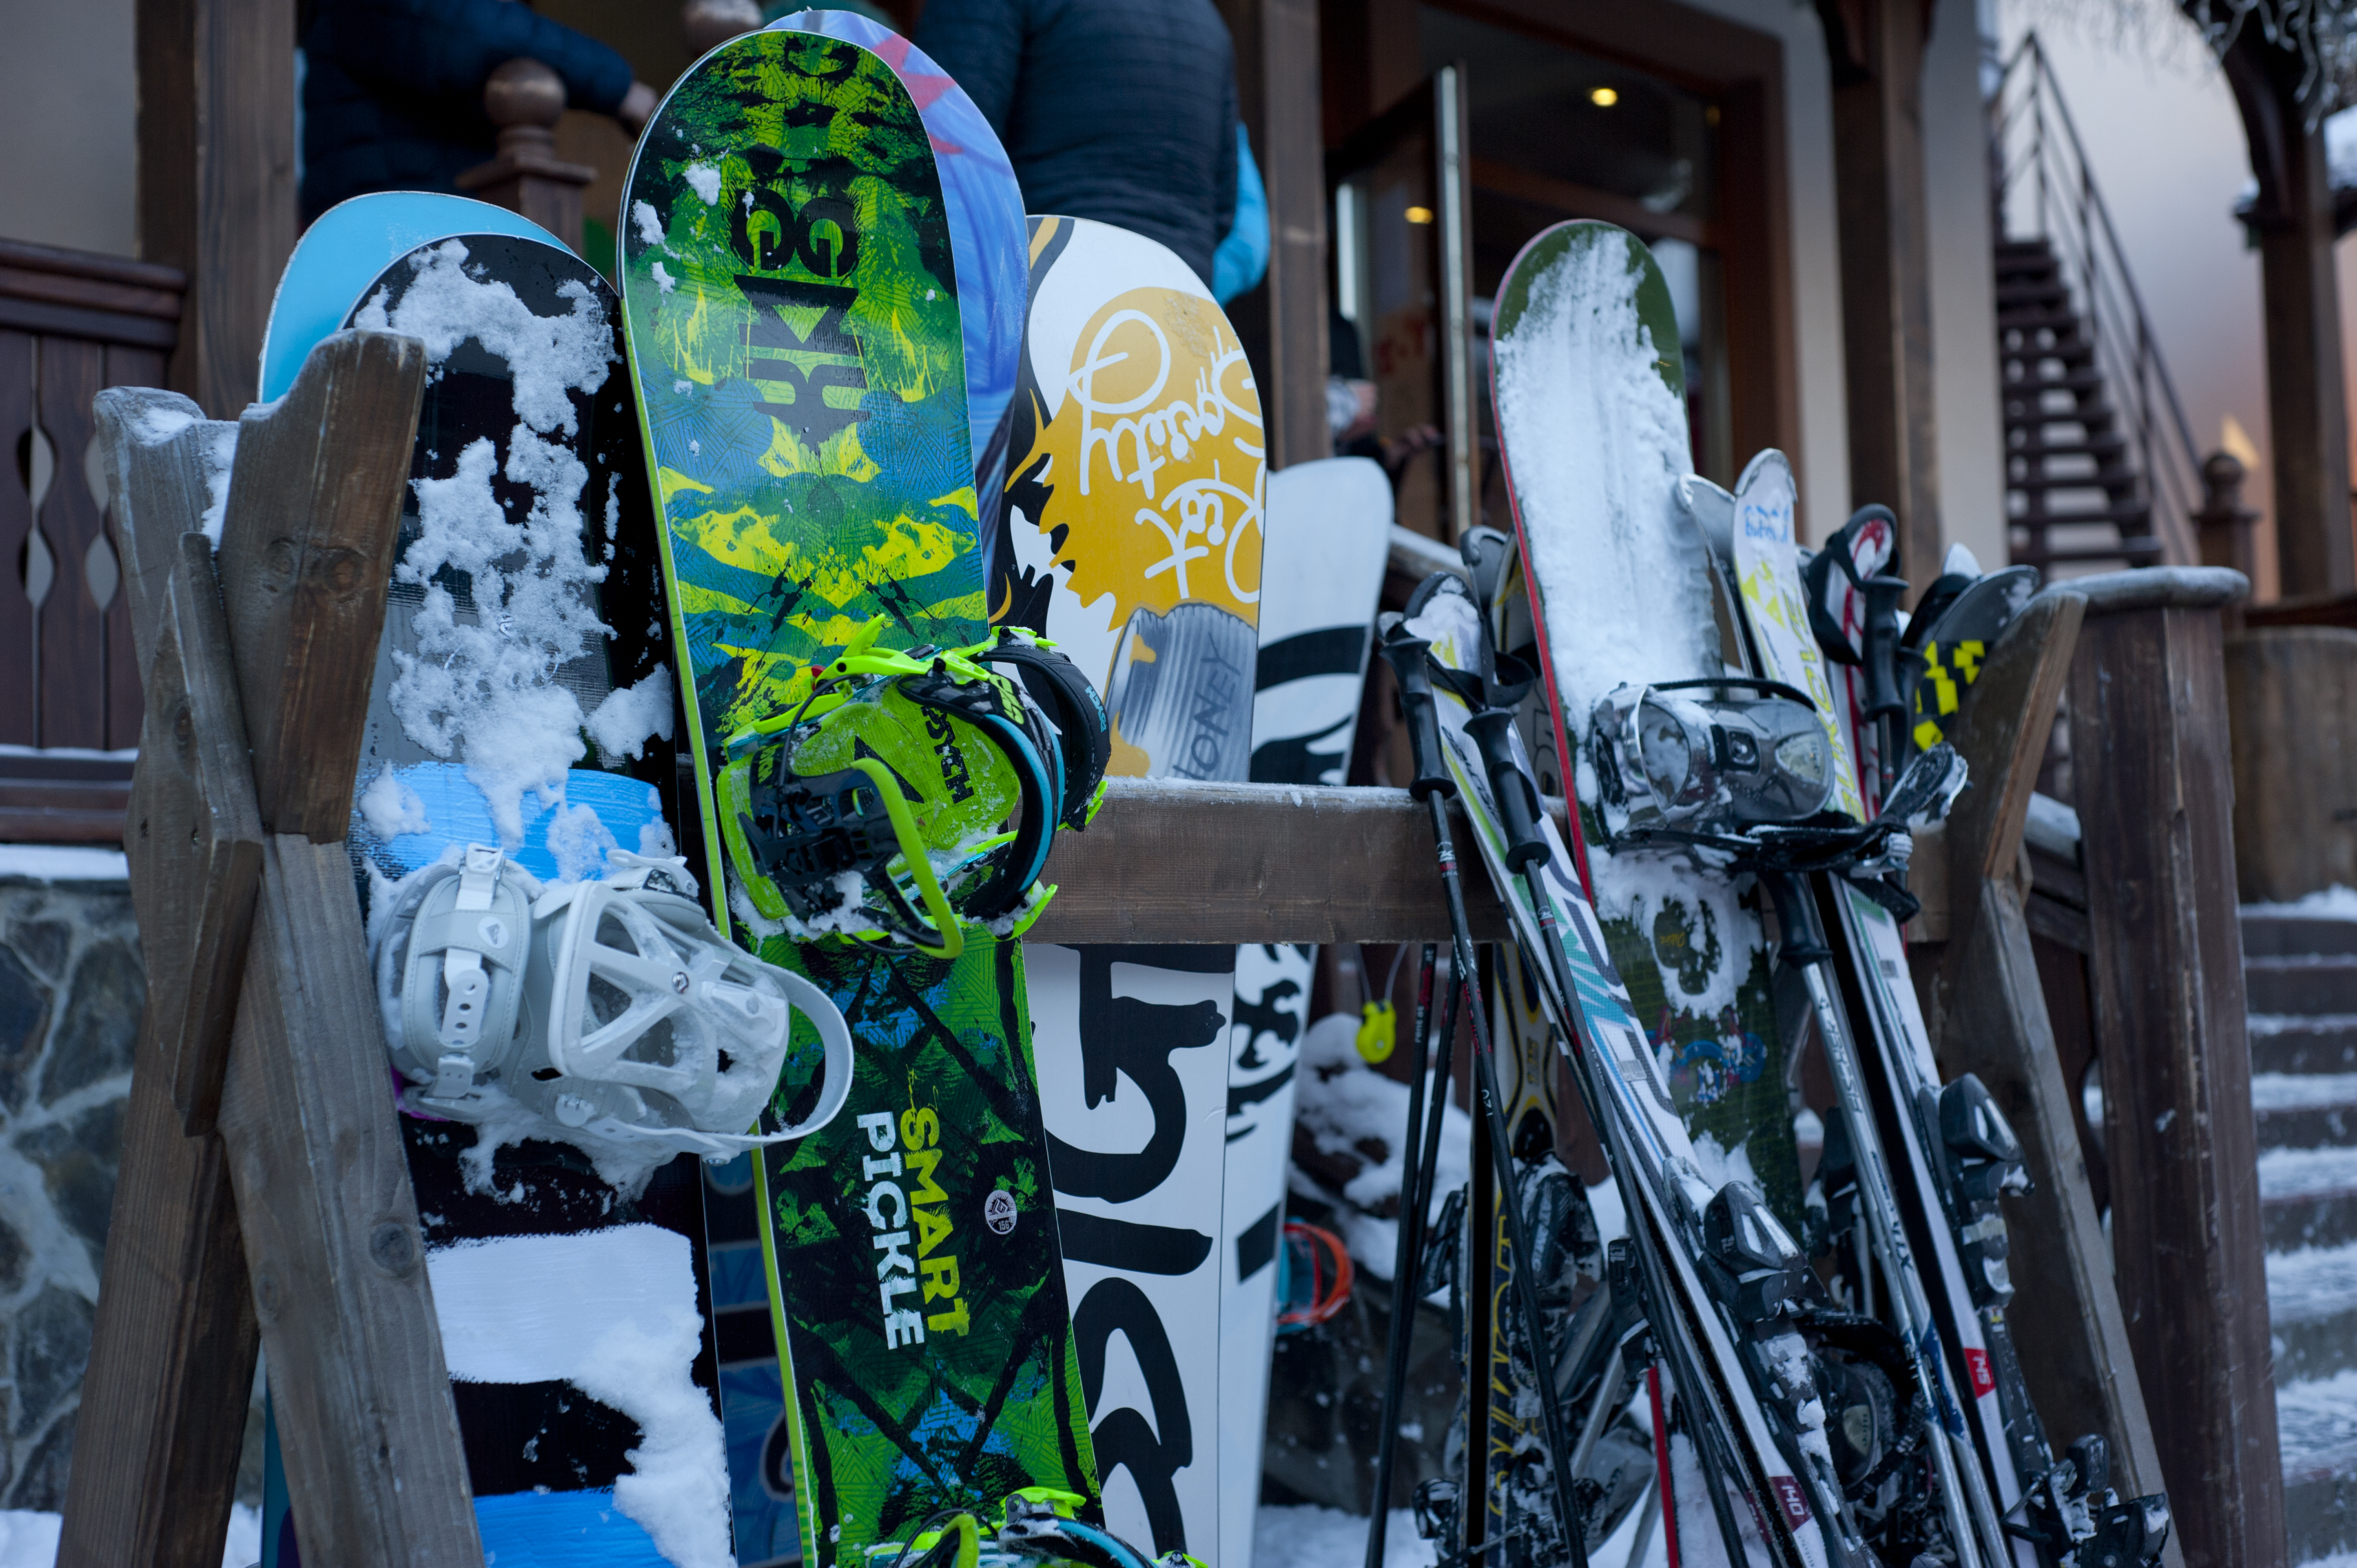 Snowsports gear: rent or buy?